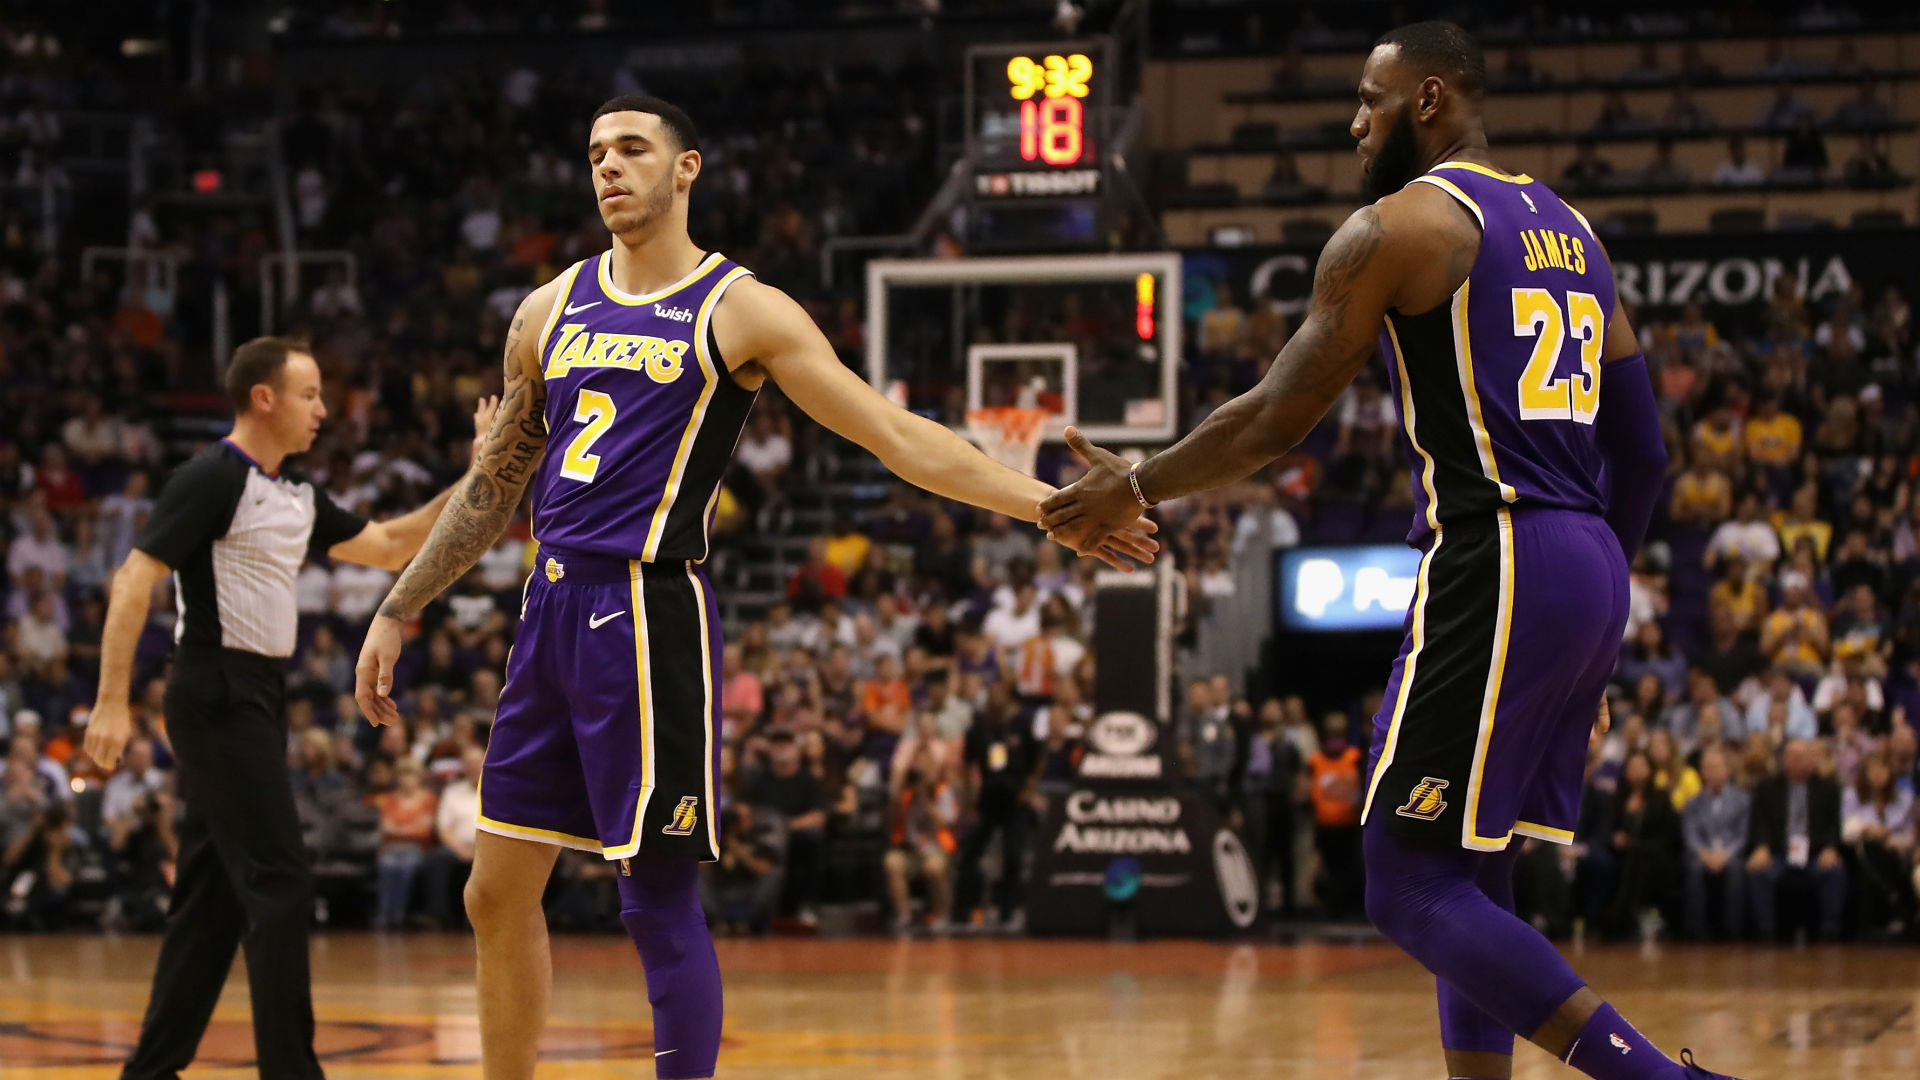 Los Angeles Lakers duo LeBron James and Lonzo Ball